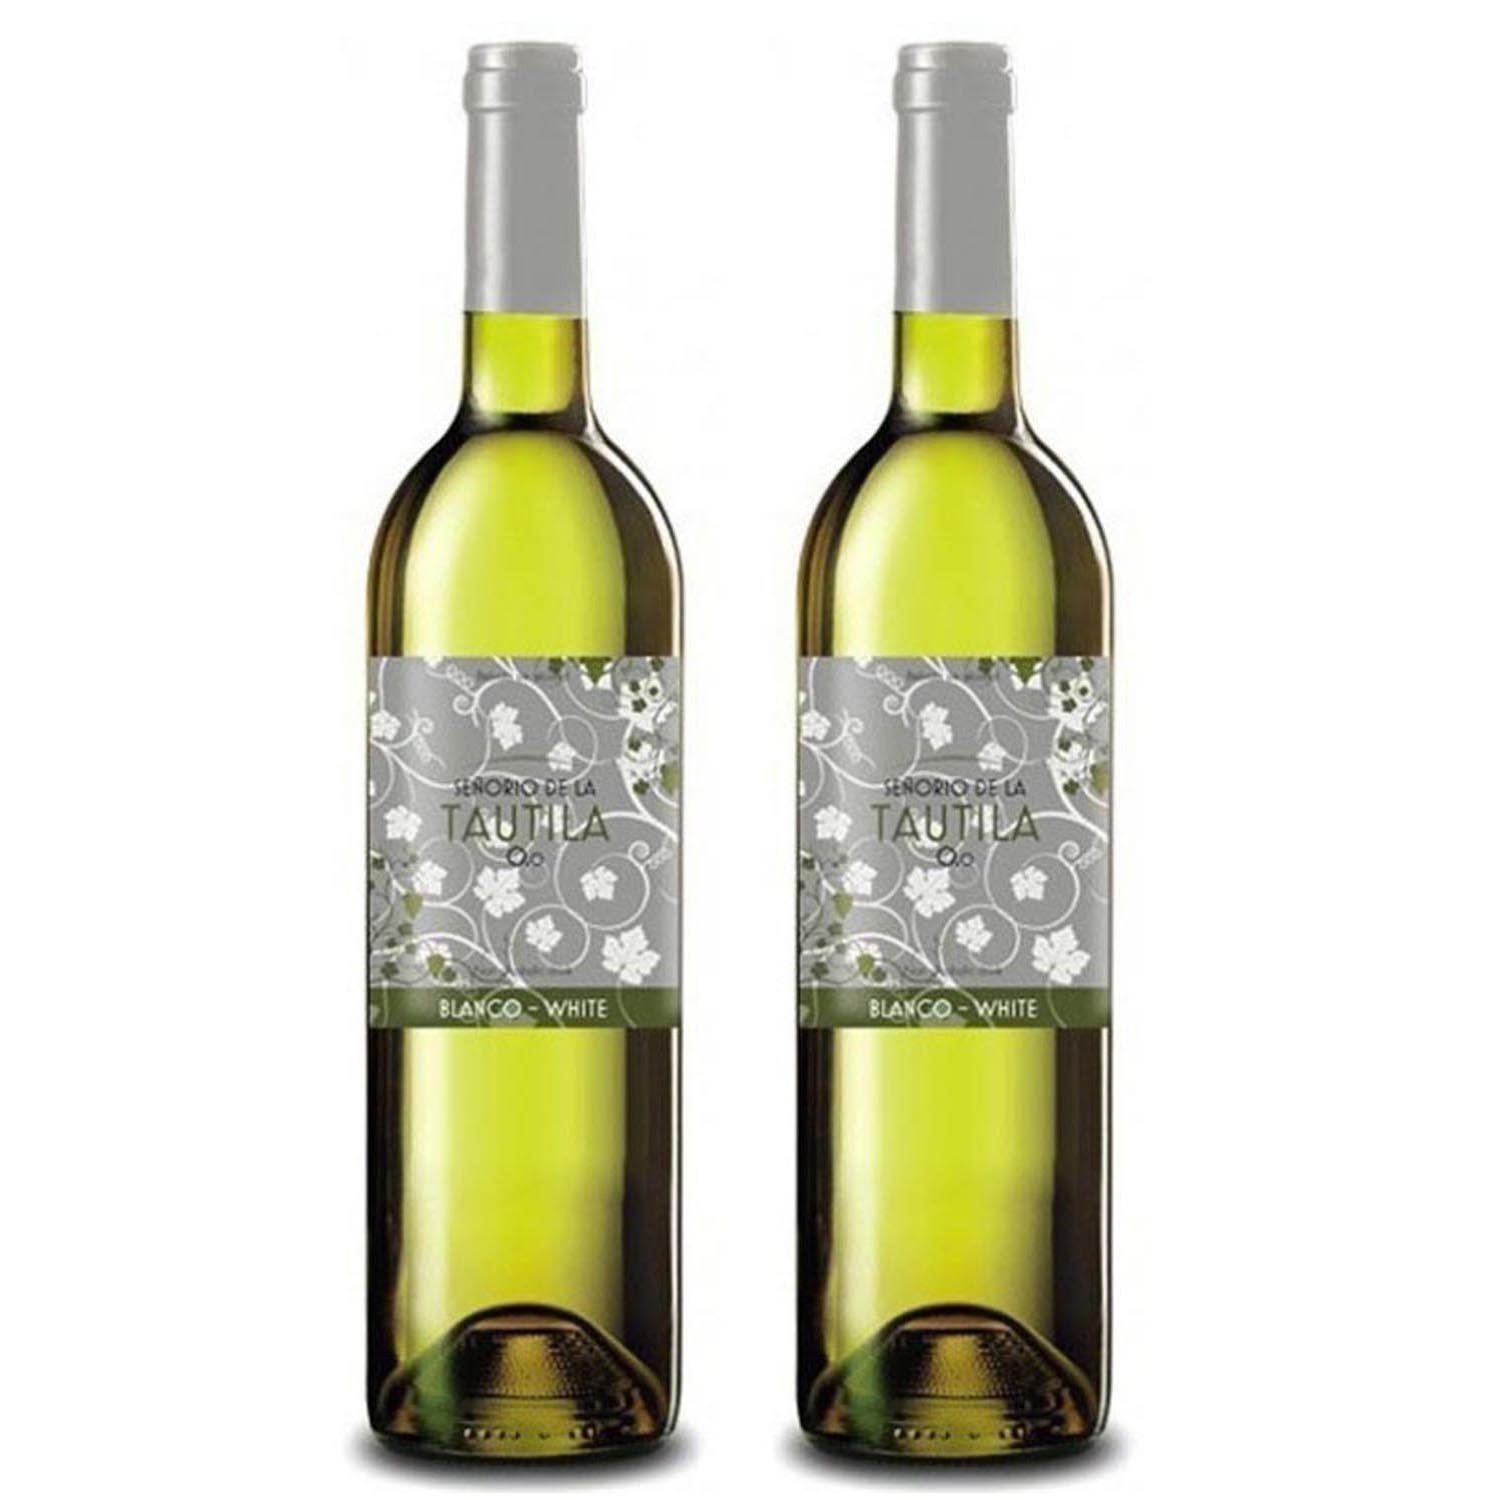 Tautila Blanco Non-Alcoholic White Wine 750ml (2 Bottles)